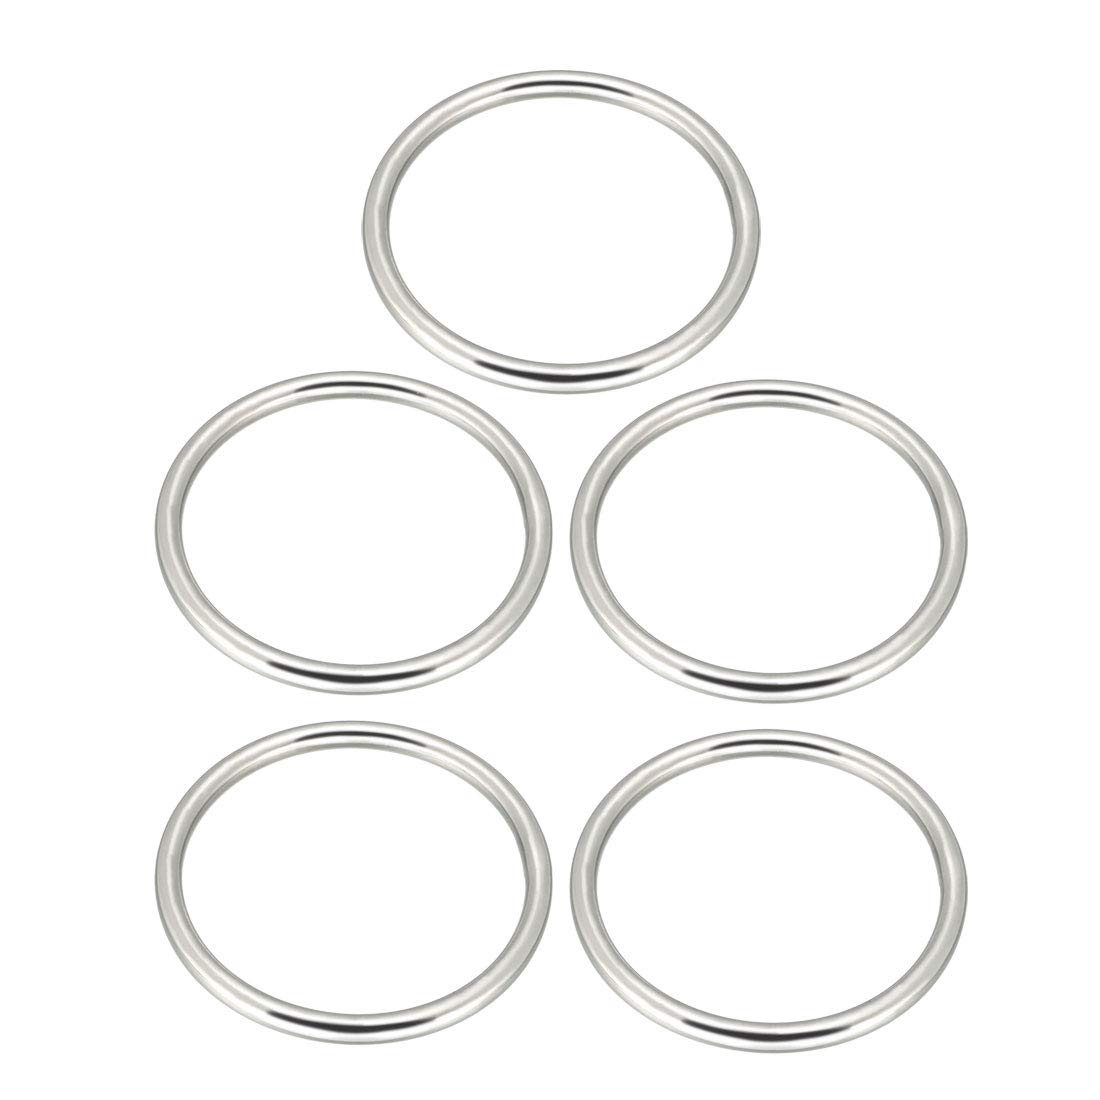 sourcing map 5 Pcs Multi-Purpose Metal O Ring Buckle Welded 58mm x 50mm x 4mm for Hardware Bags Ring Hand DIY Accessories